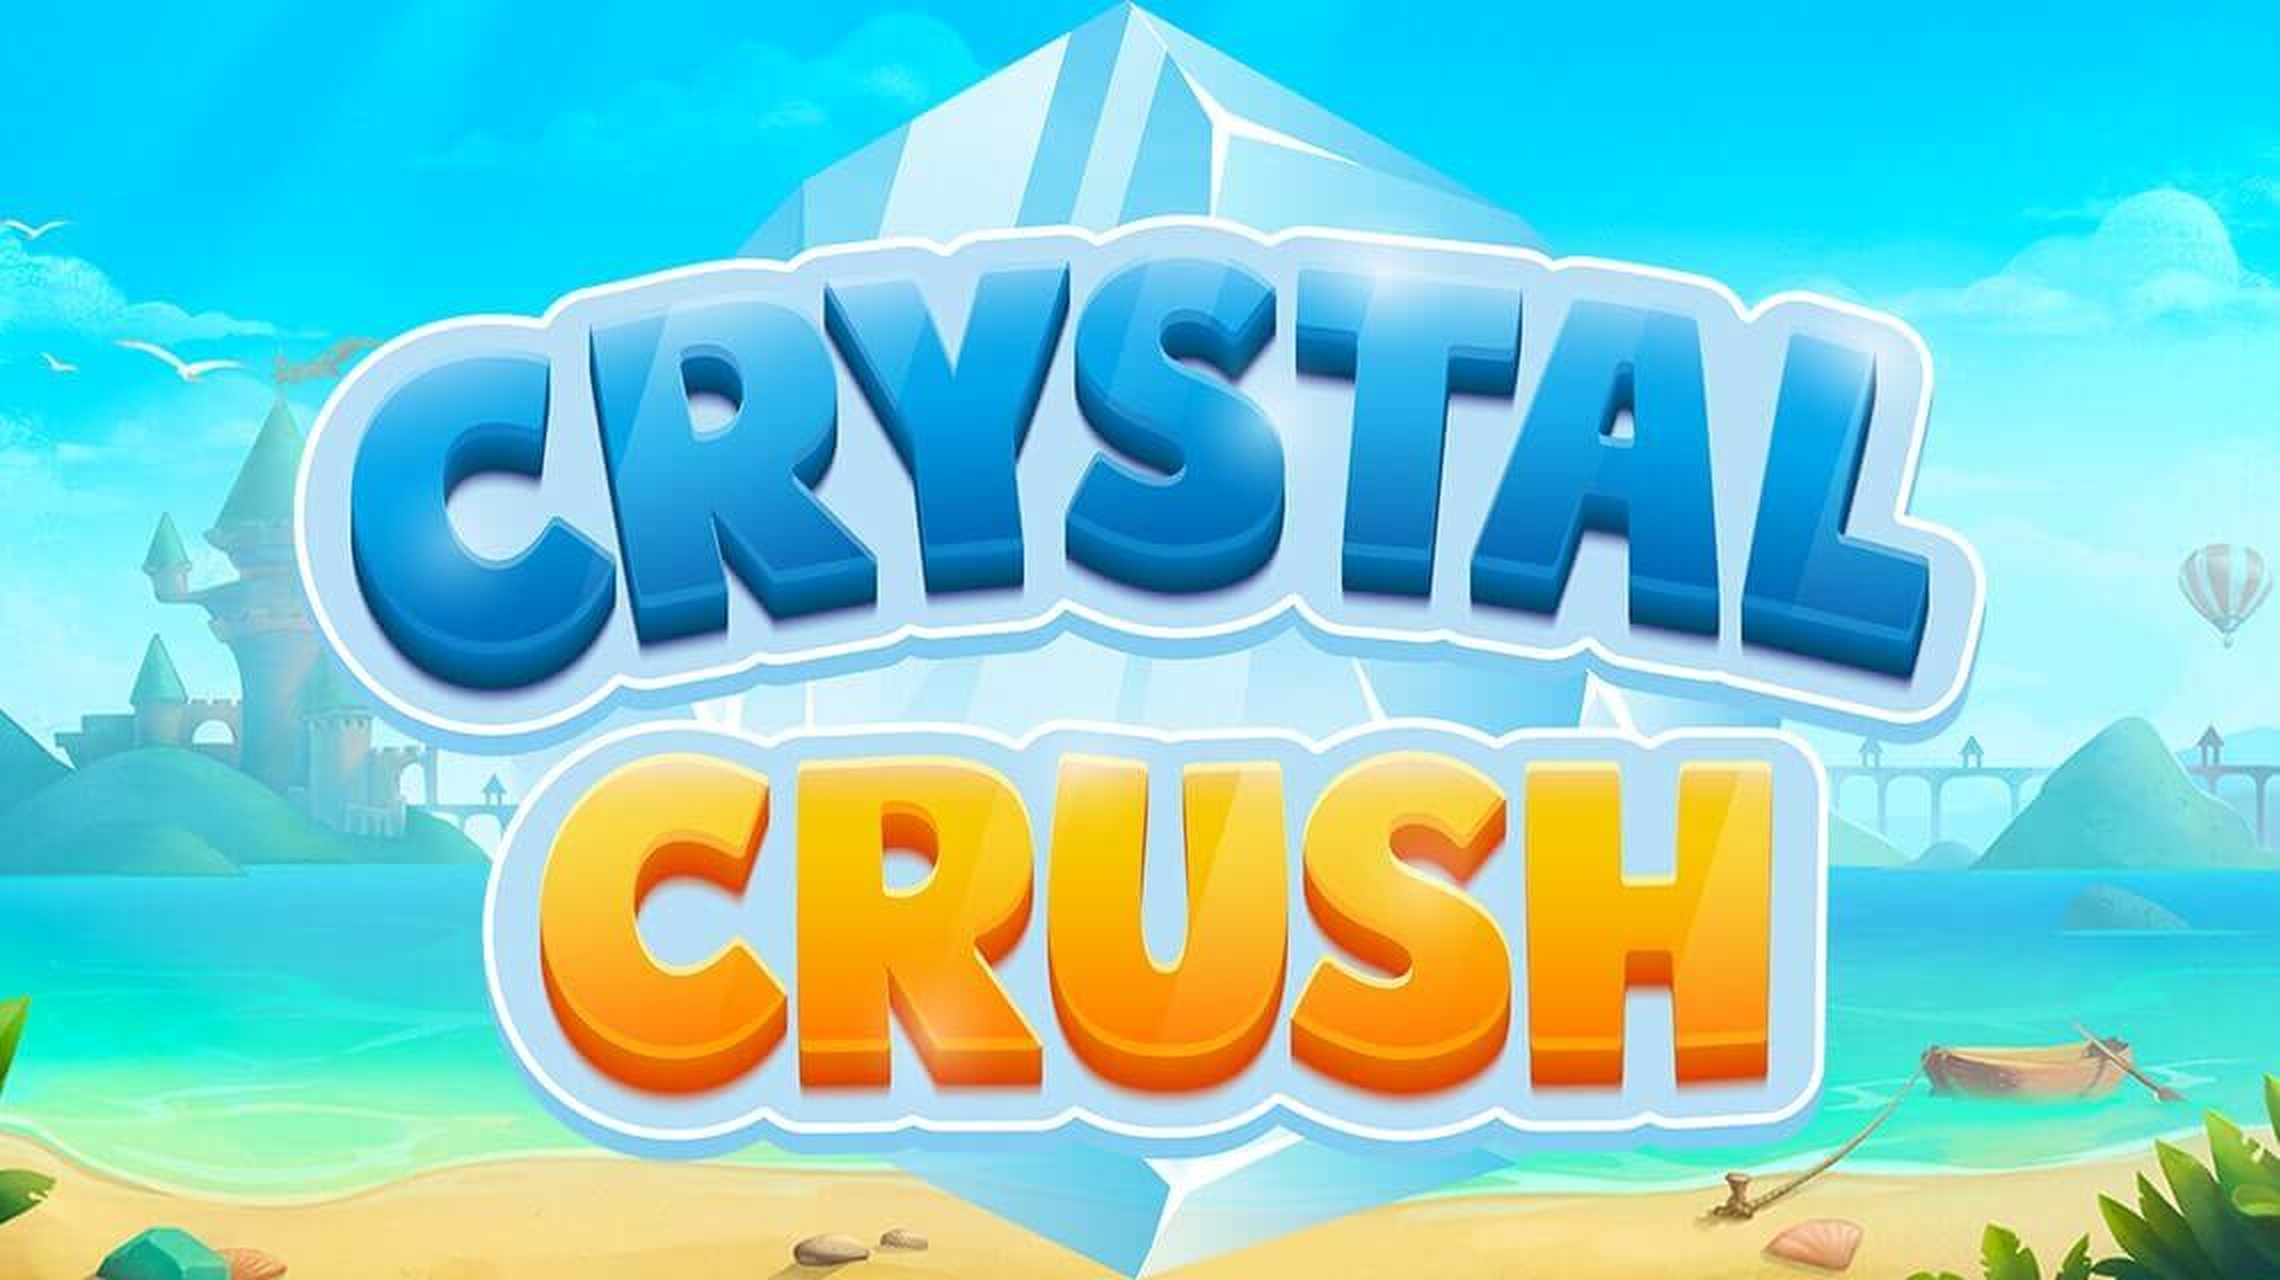 The Crystal Crush Online Slot Demo Game by Playson